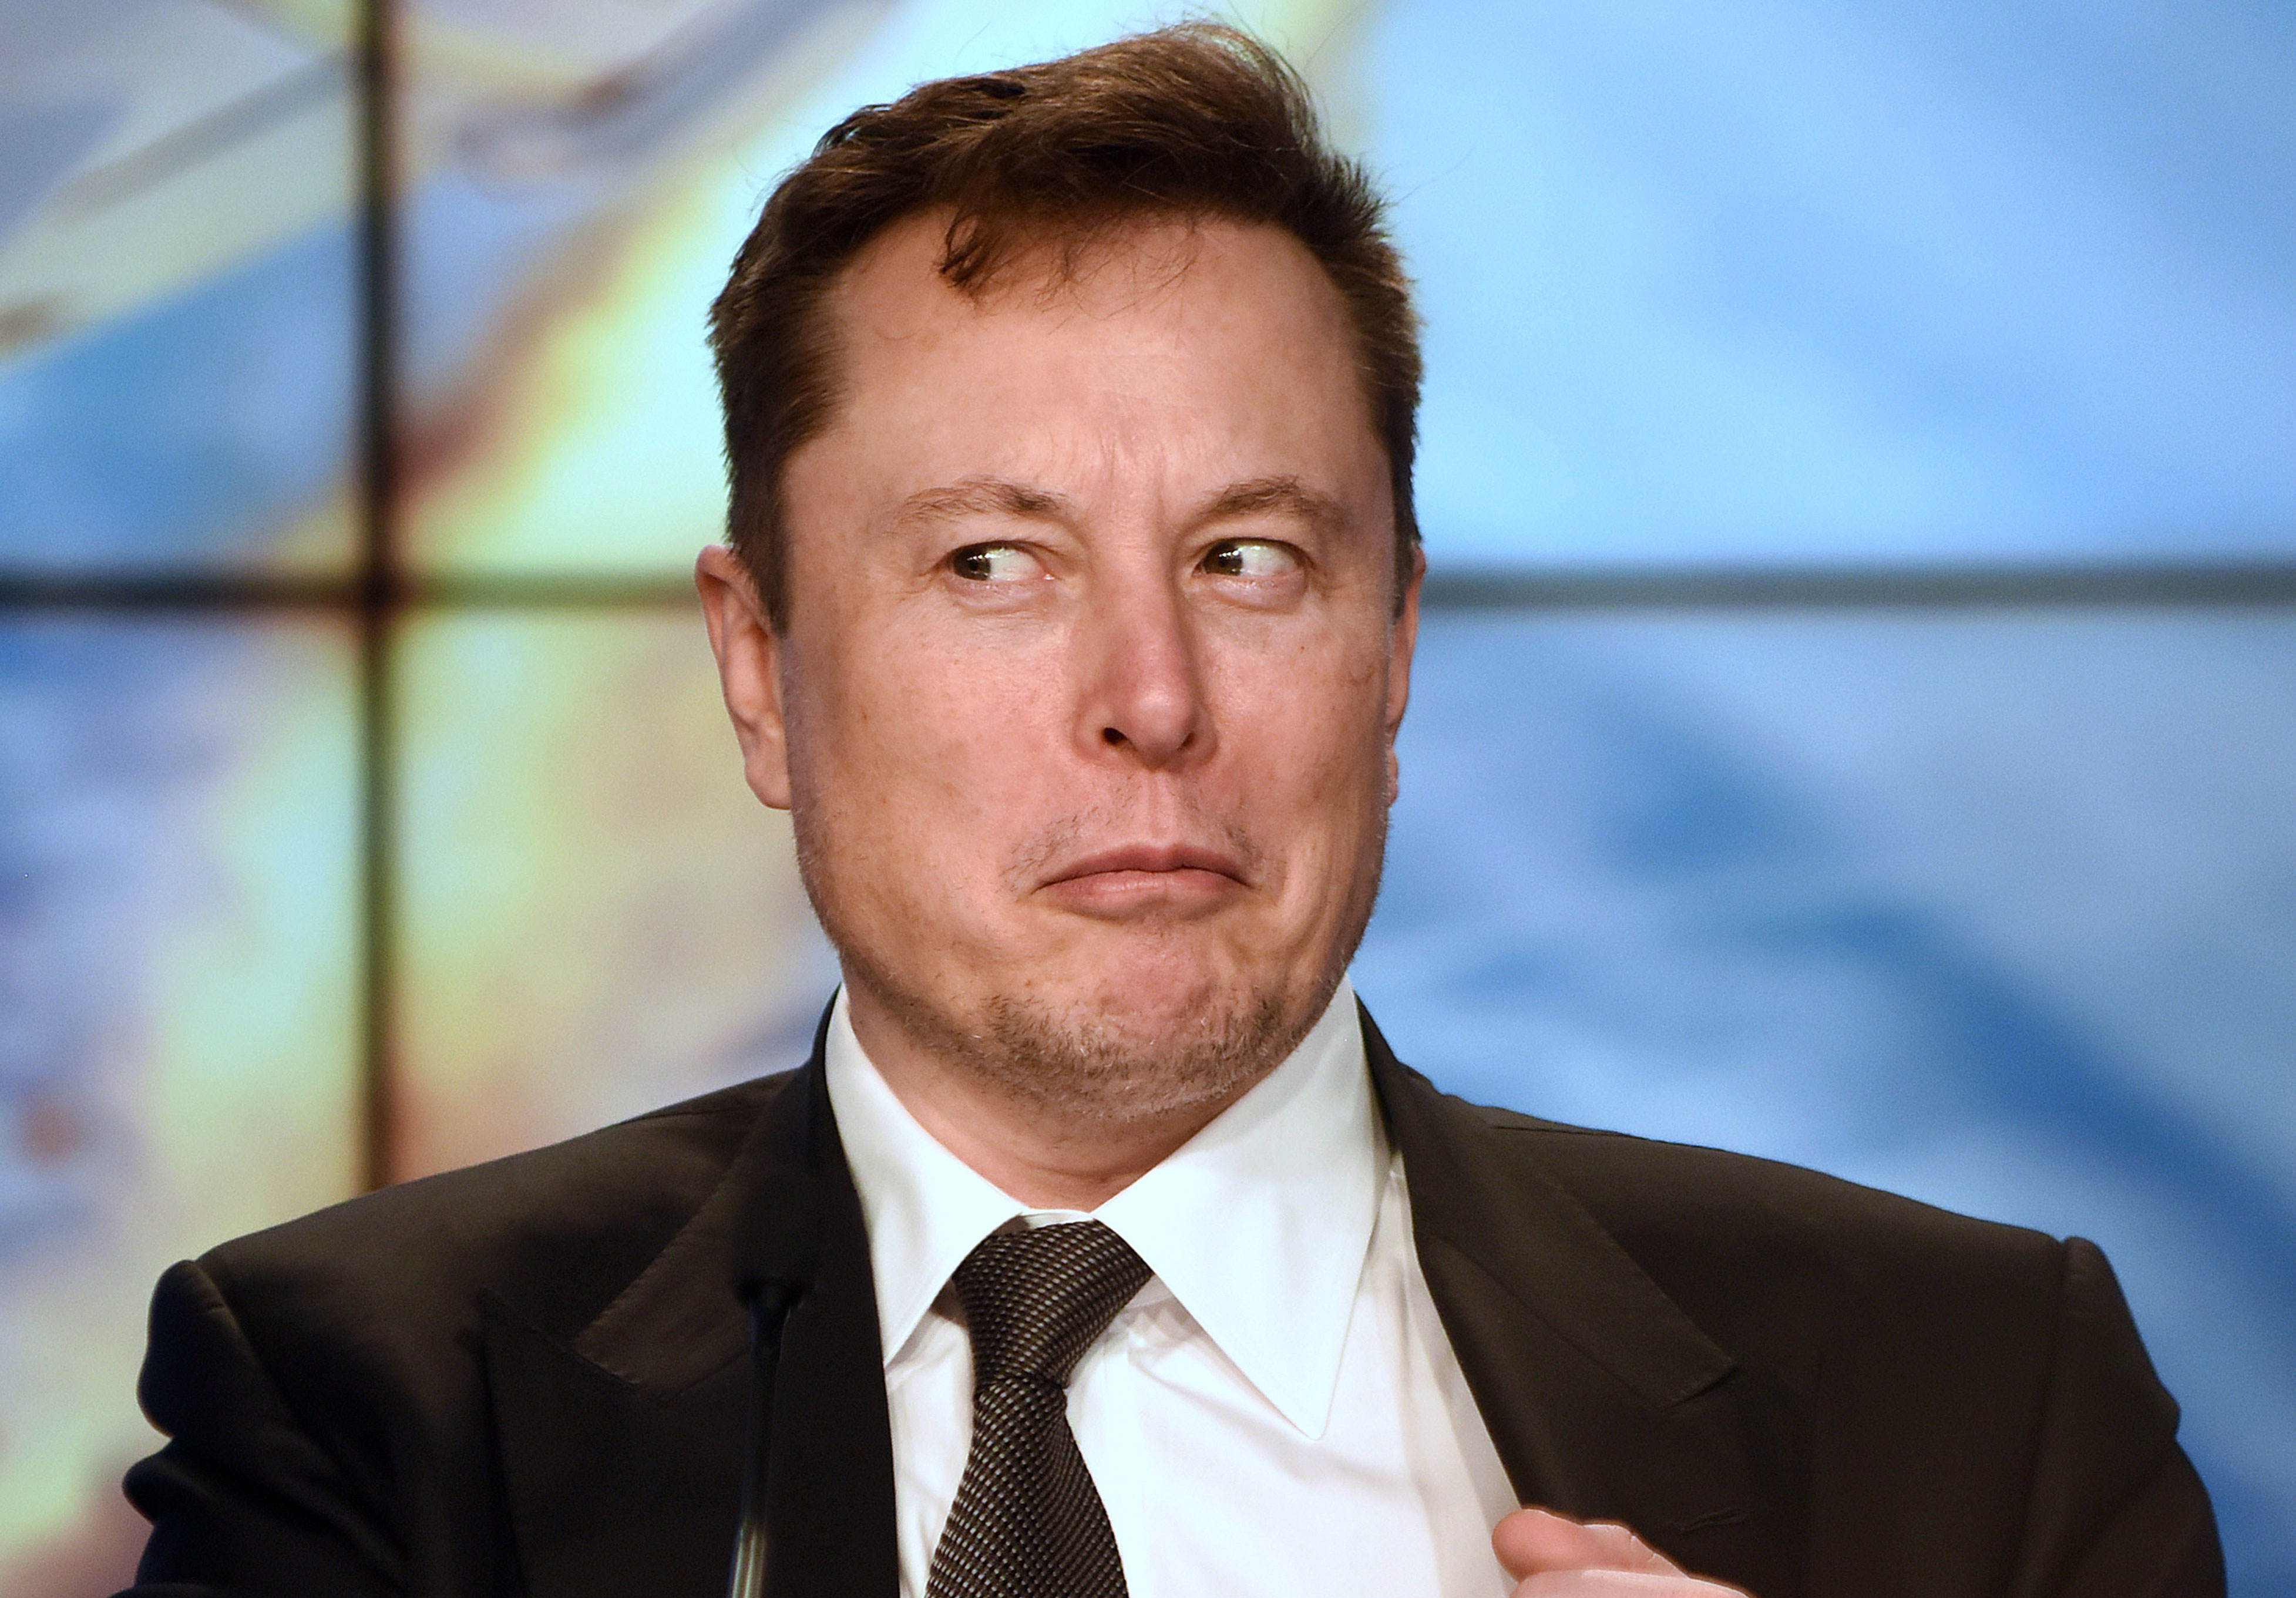 Make or Break Time for Elon Musk: SpaceX Launches With NASA, Tesla Cuts Prices